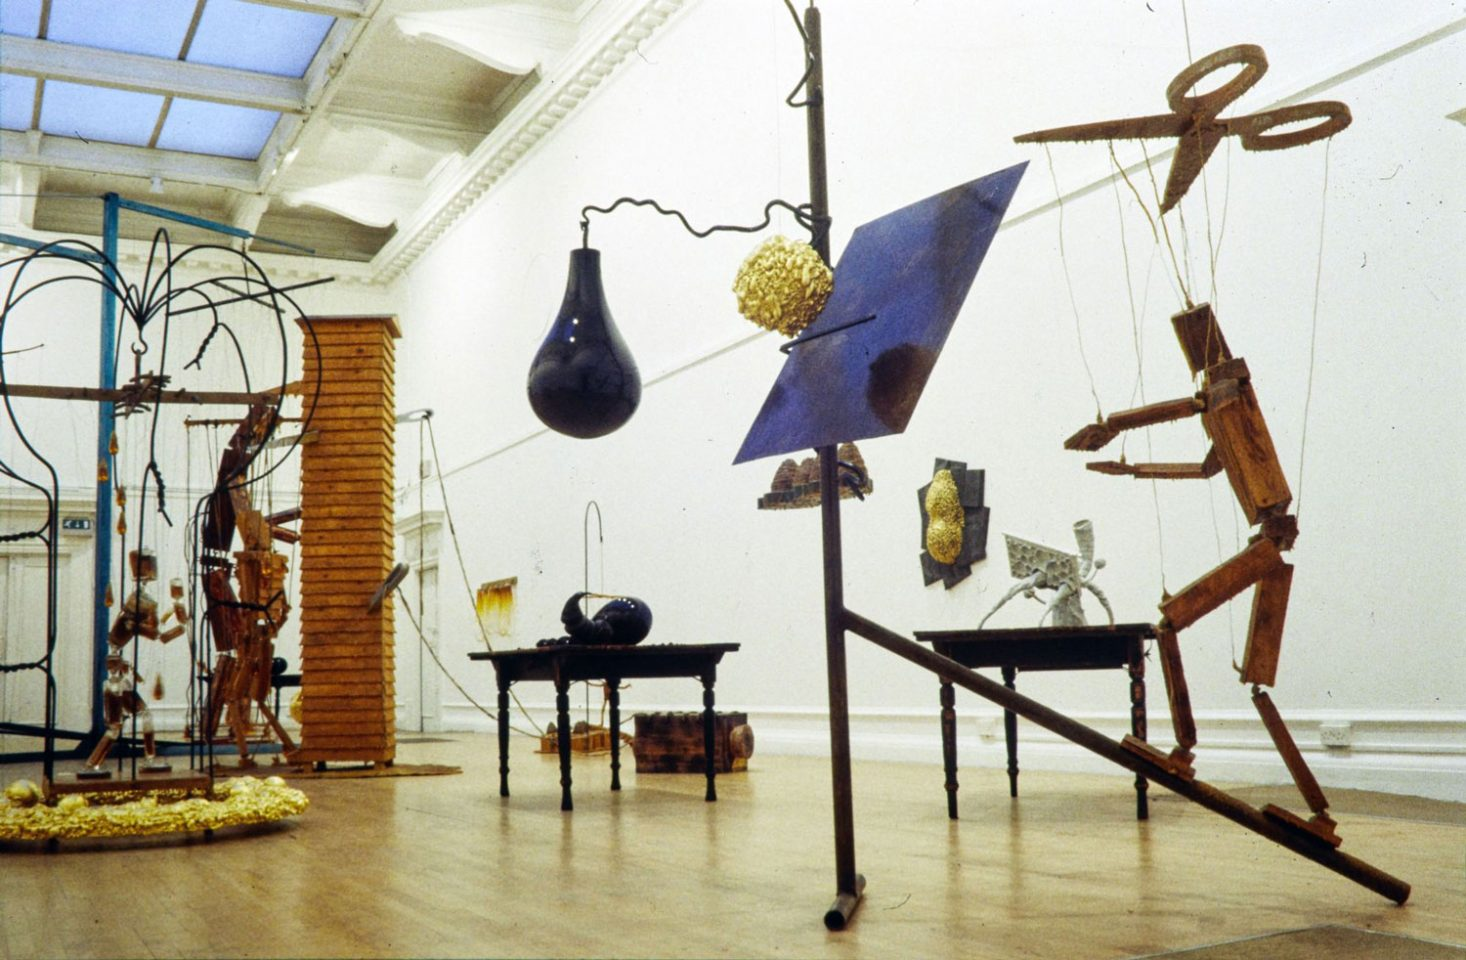 Installation view of Bill Woodrow's 2001 exhibition The Beekeeper.